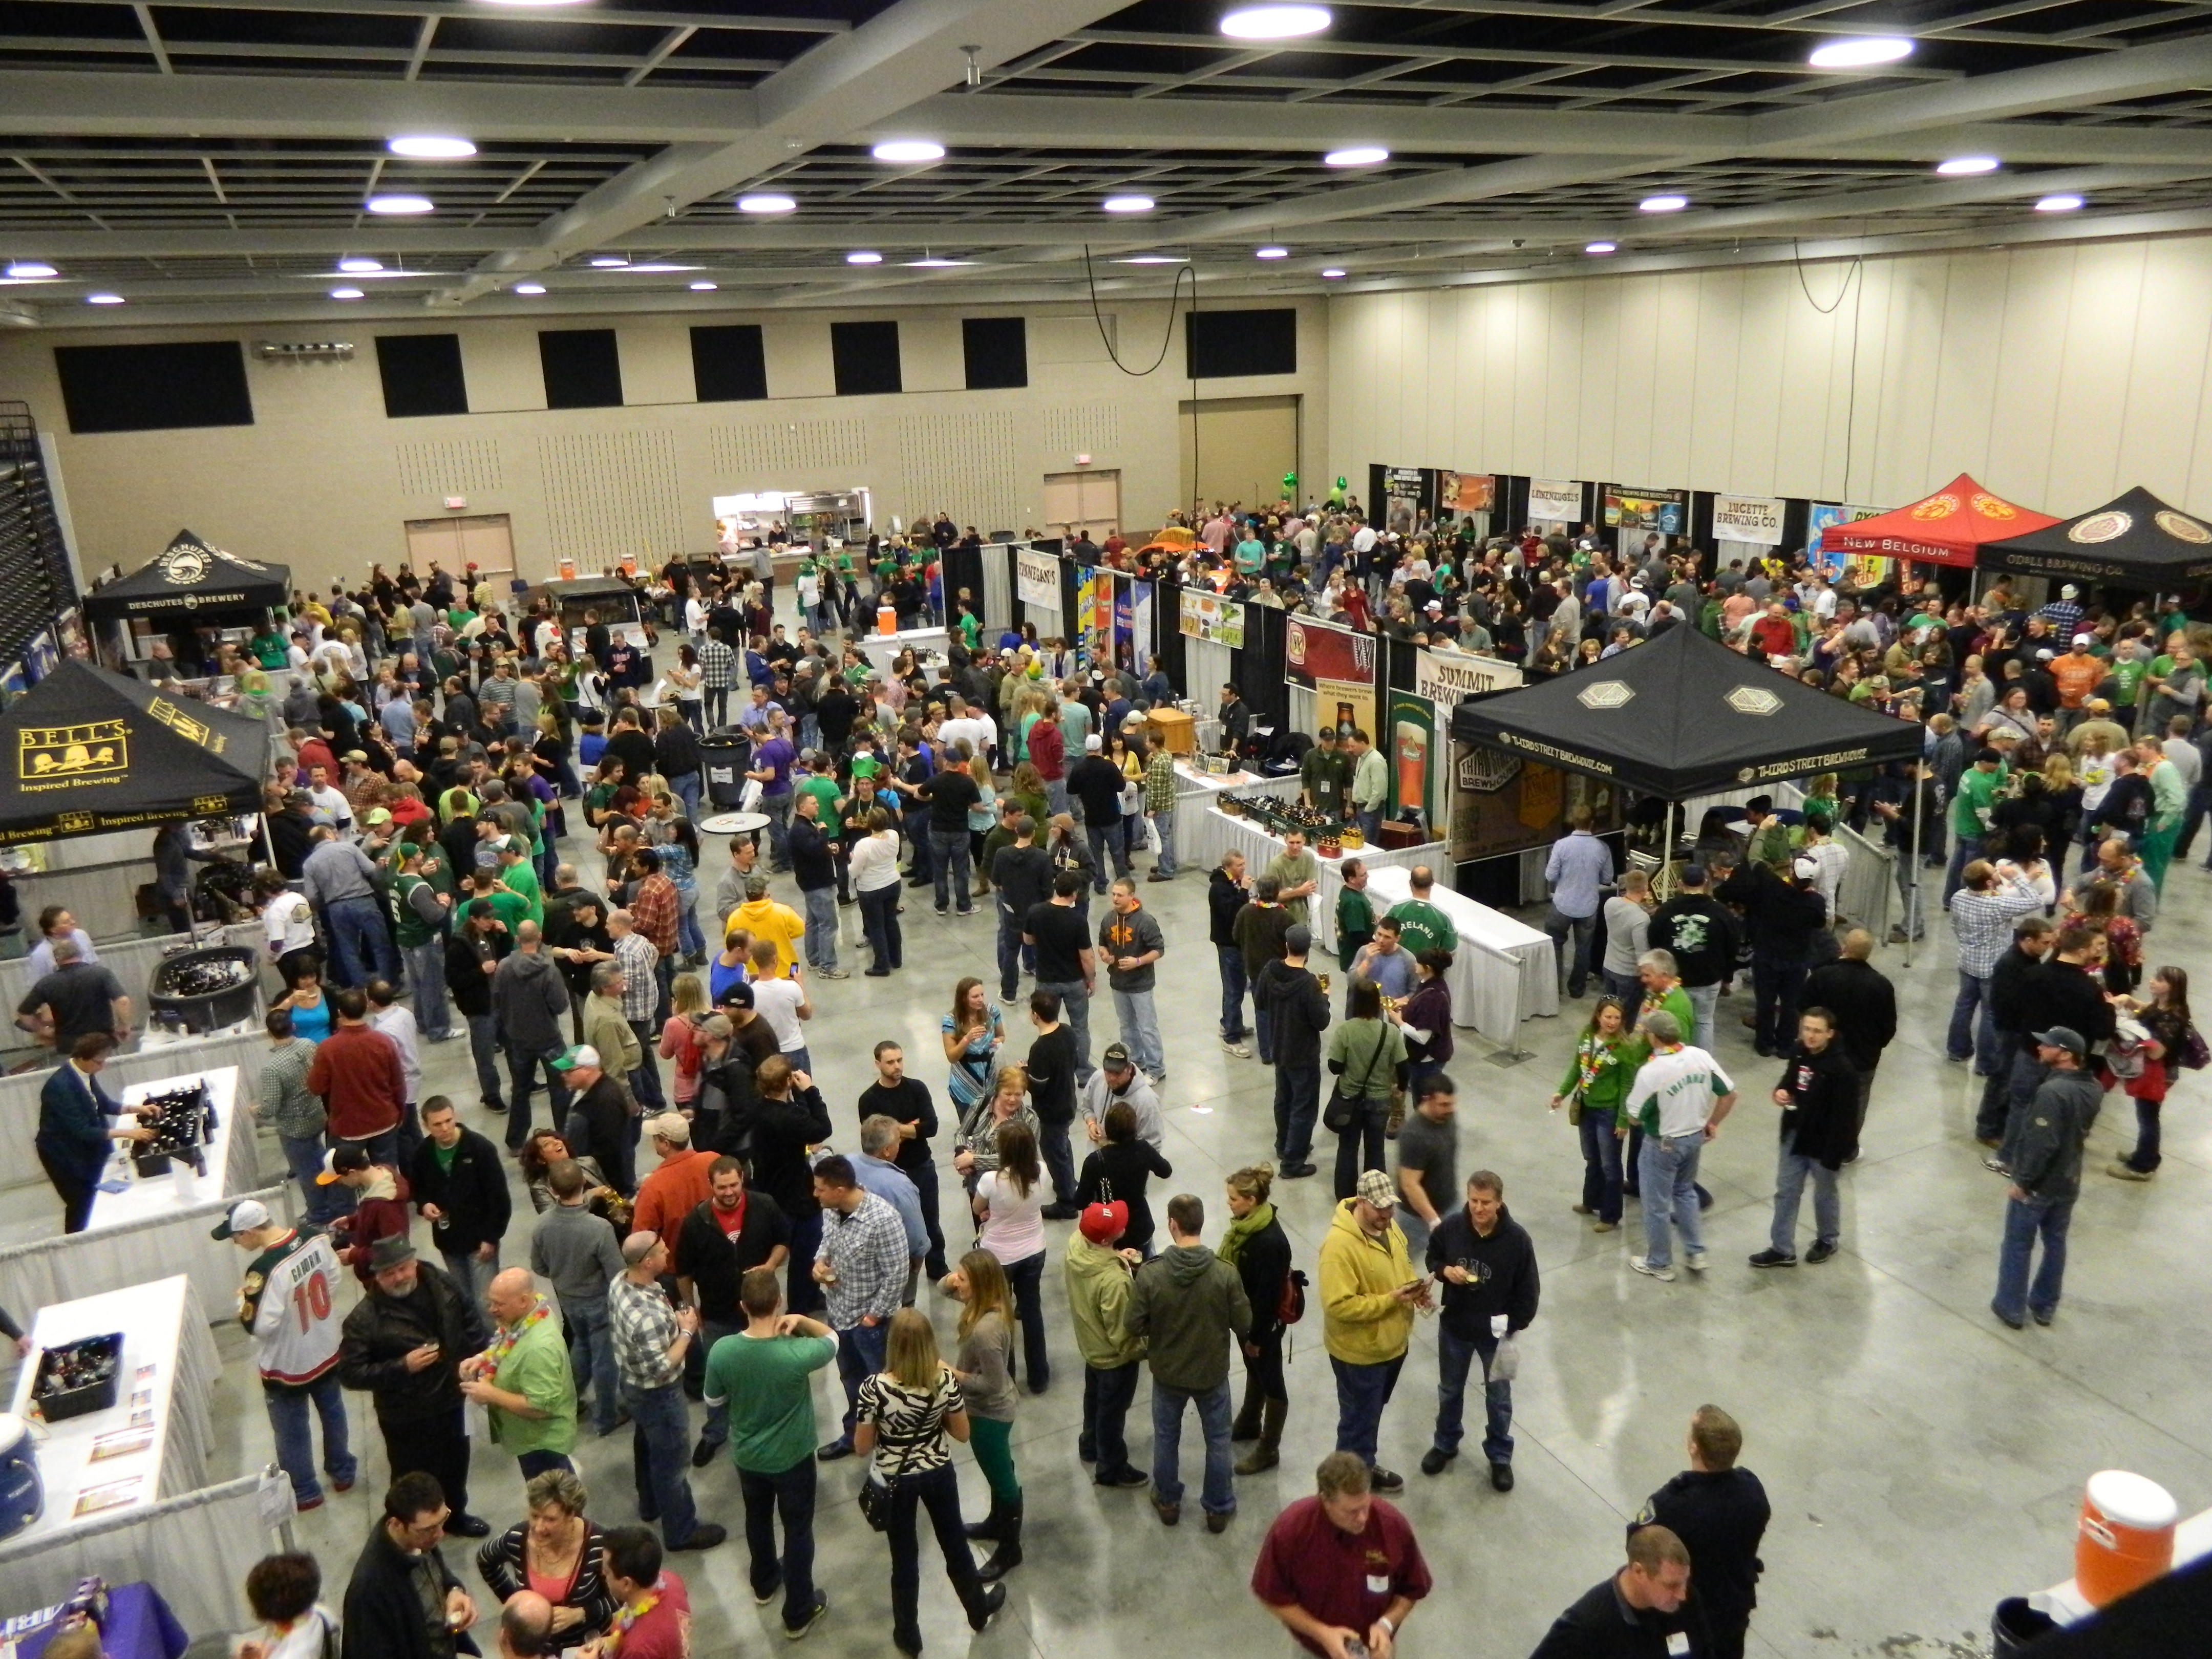 Aerial view of St. Cloud Craft Beer Tour 2013 in convention hall